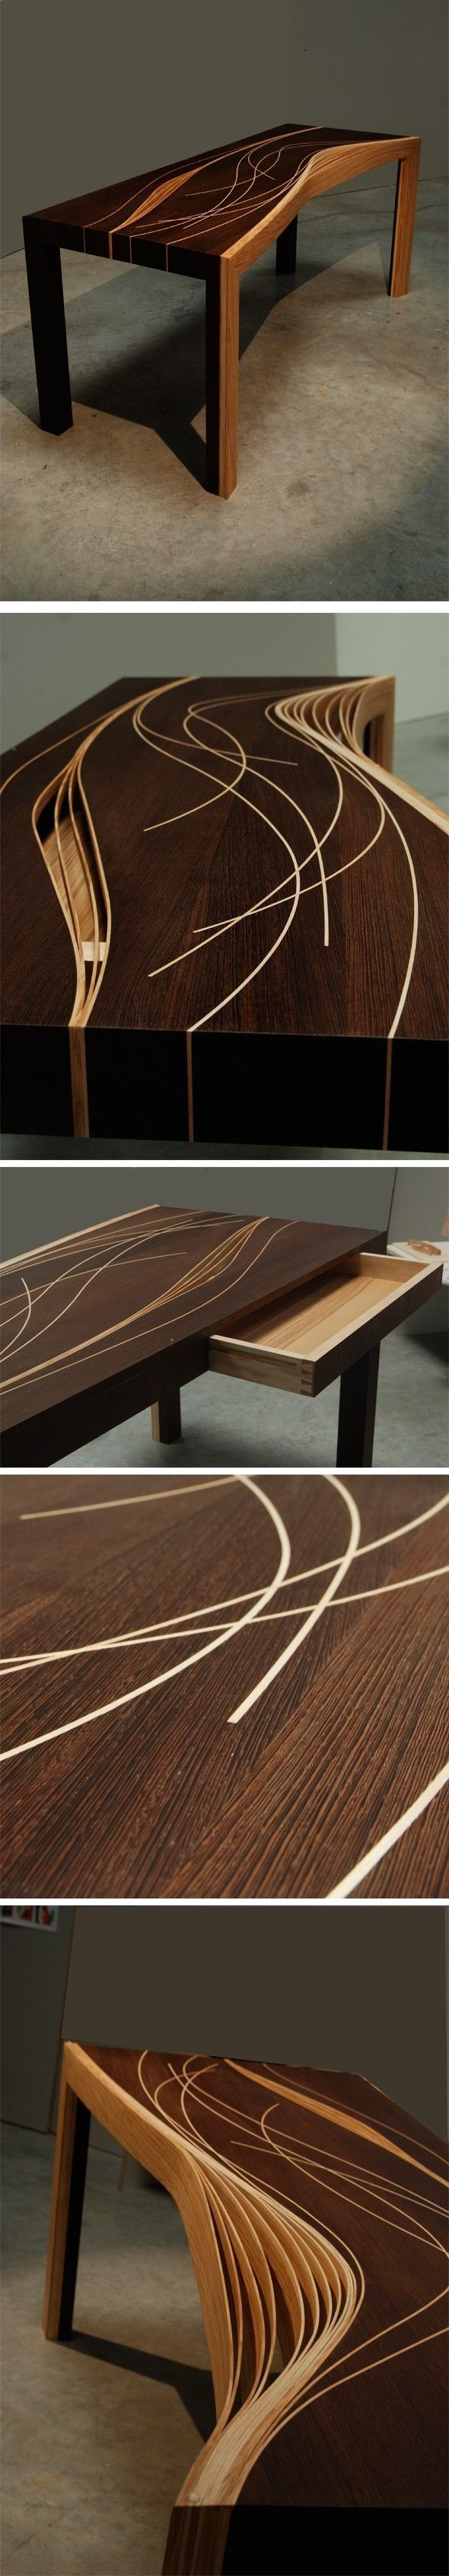 Best 25 Wooden Table Top Ideas On Pinterest Table Top